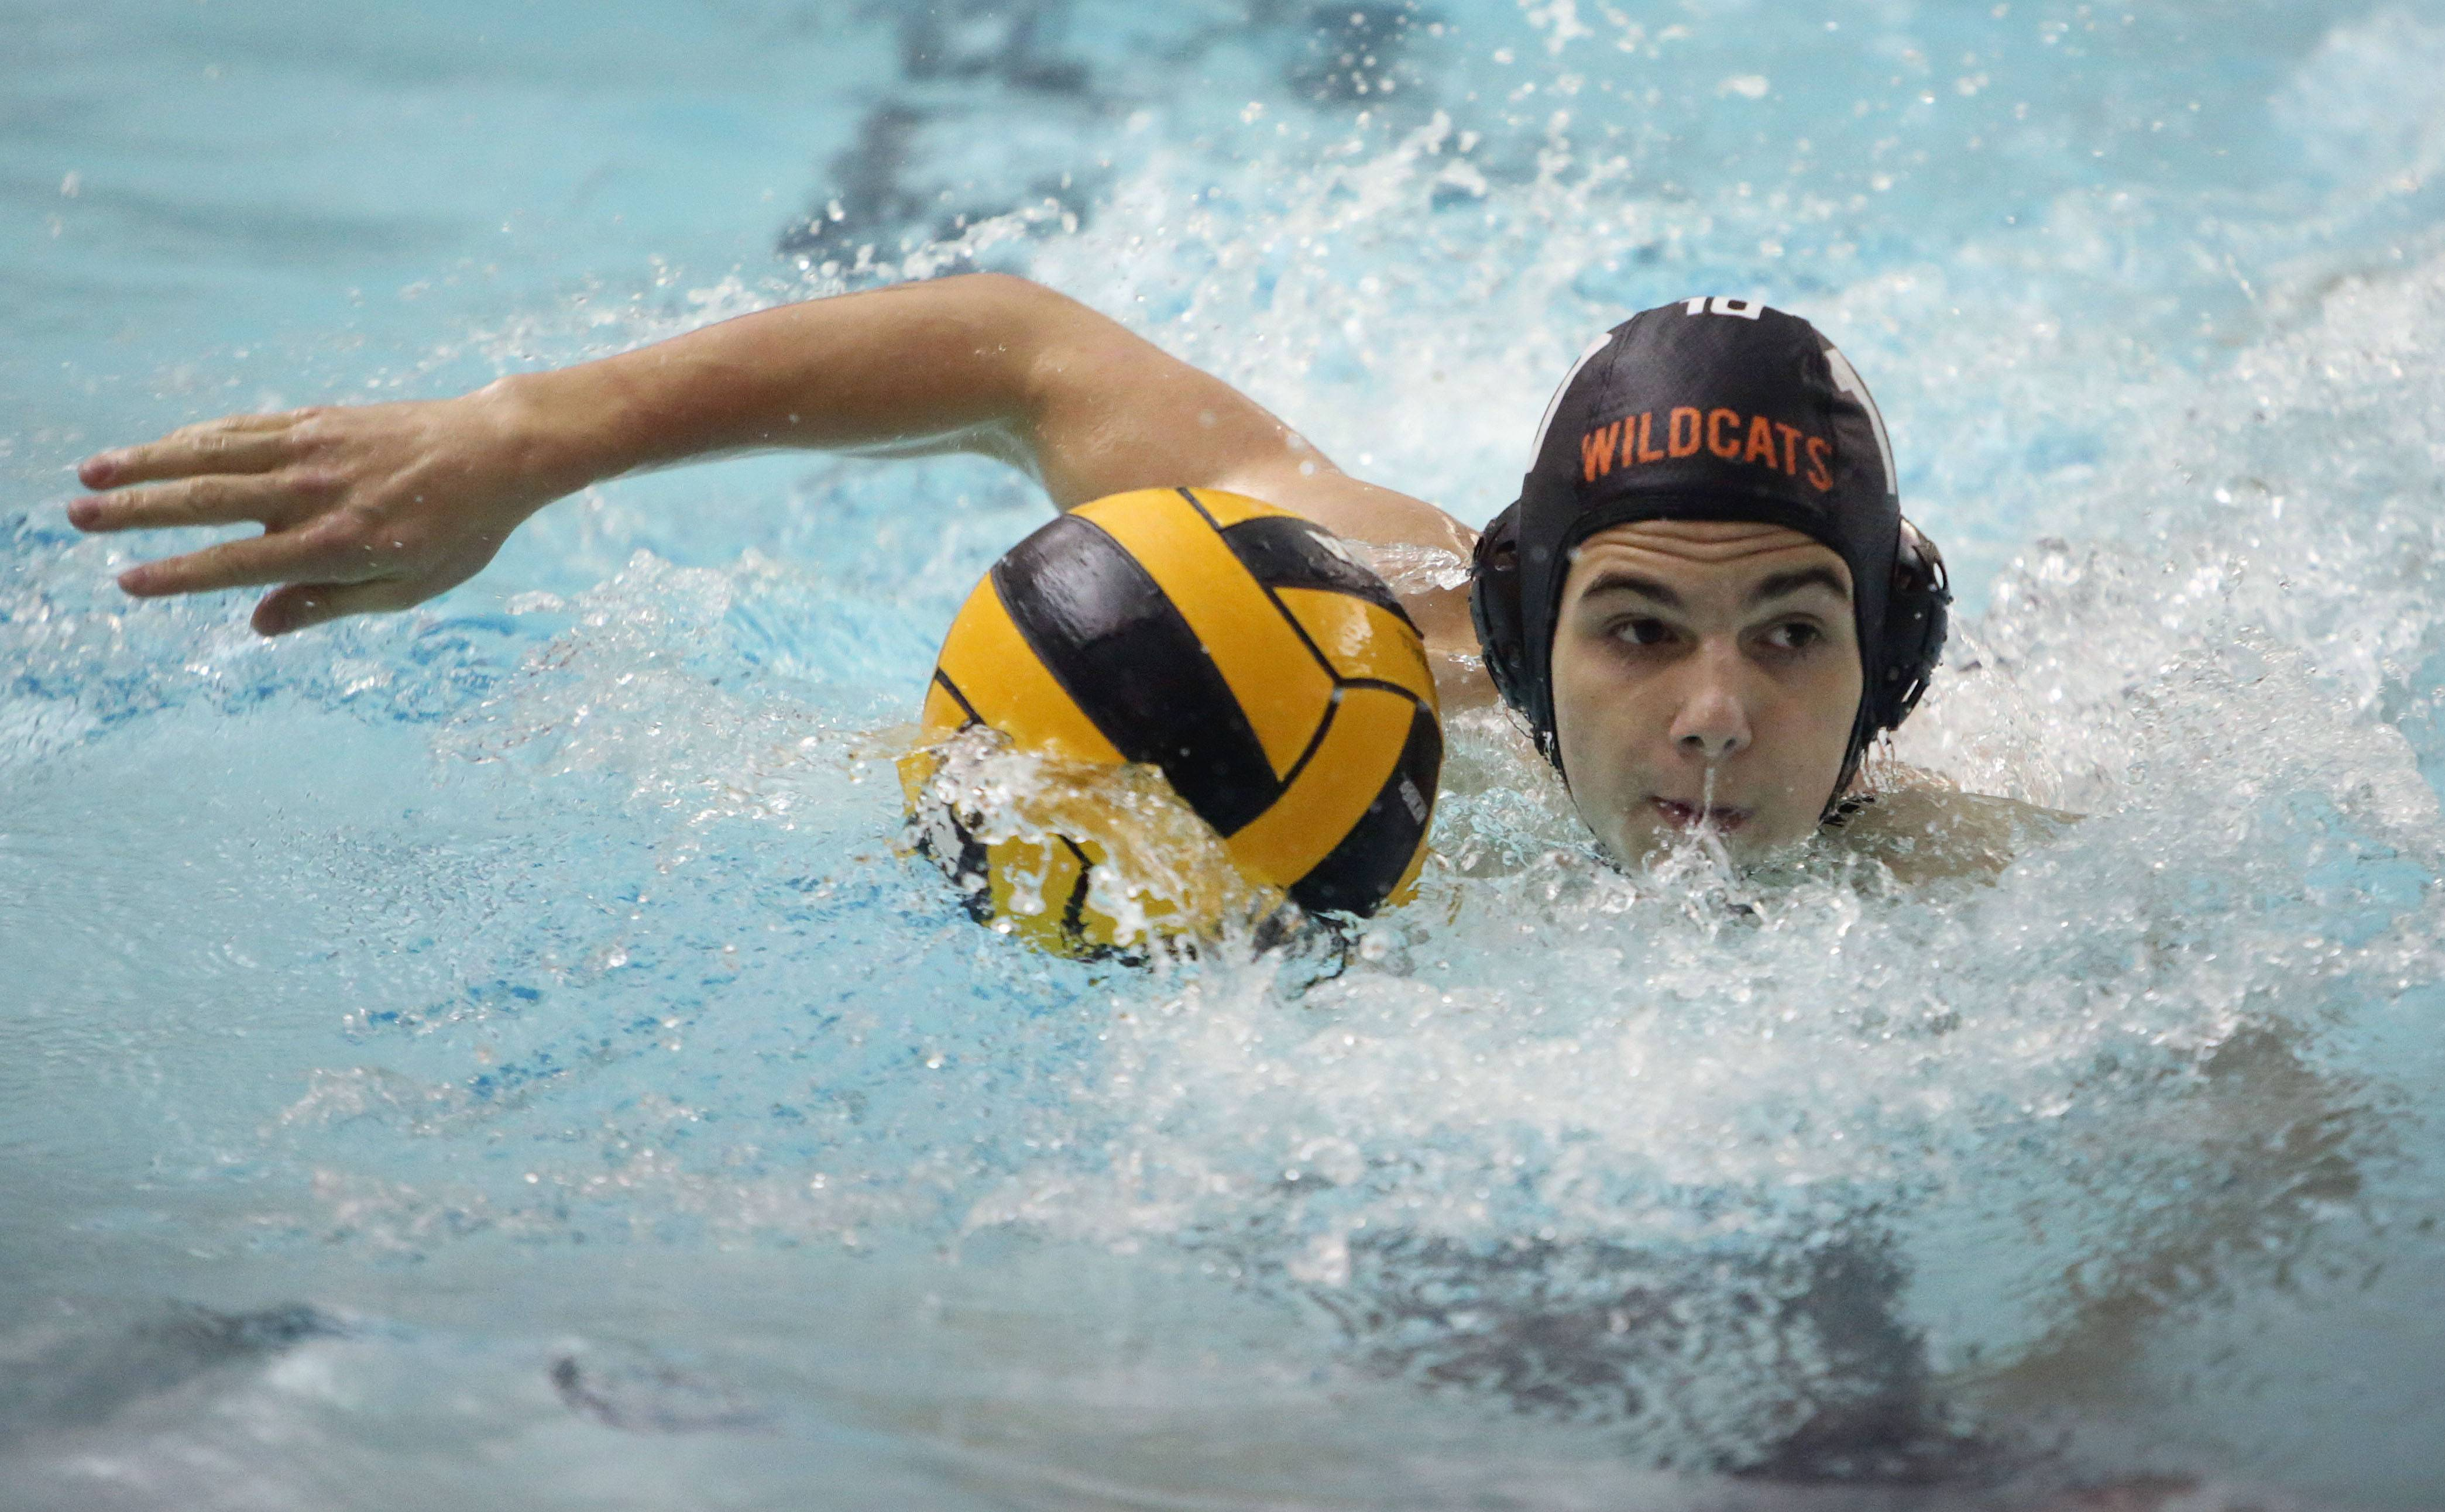 Libertyville's Carl Michelotti drives down the pool during the Wildcats' nonconference boys water polo against Deerfield on Tuesday at Libertyville High School.